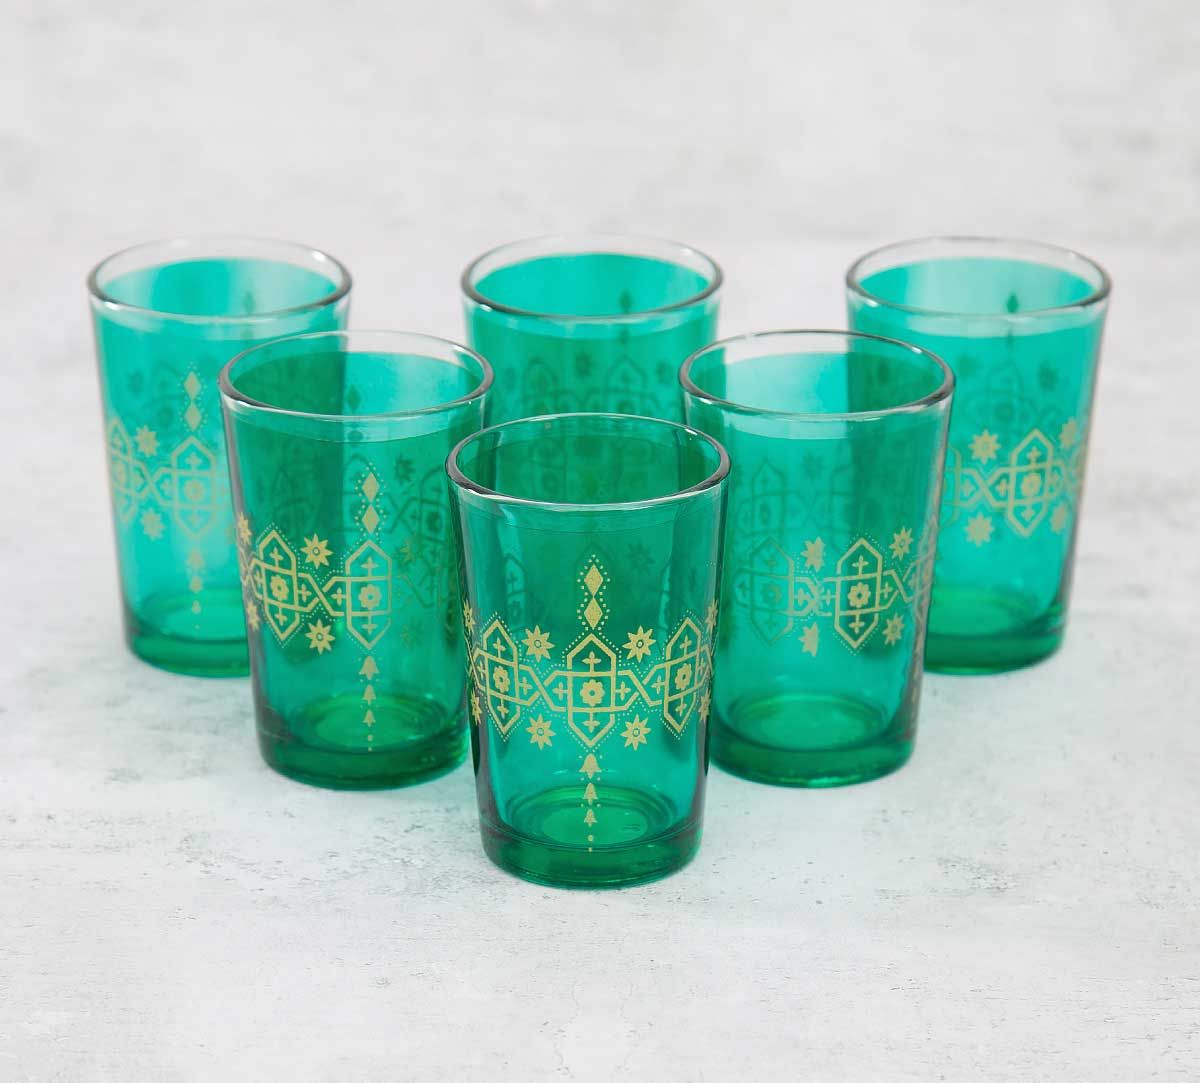 India Circus Lionheart Green Moroccan Glasses Set of 6